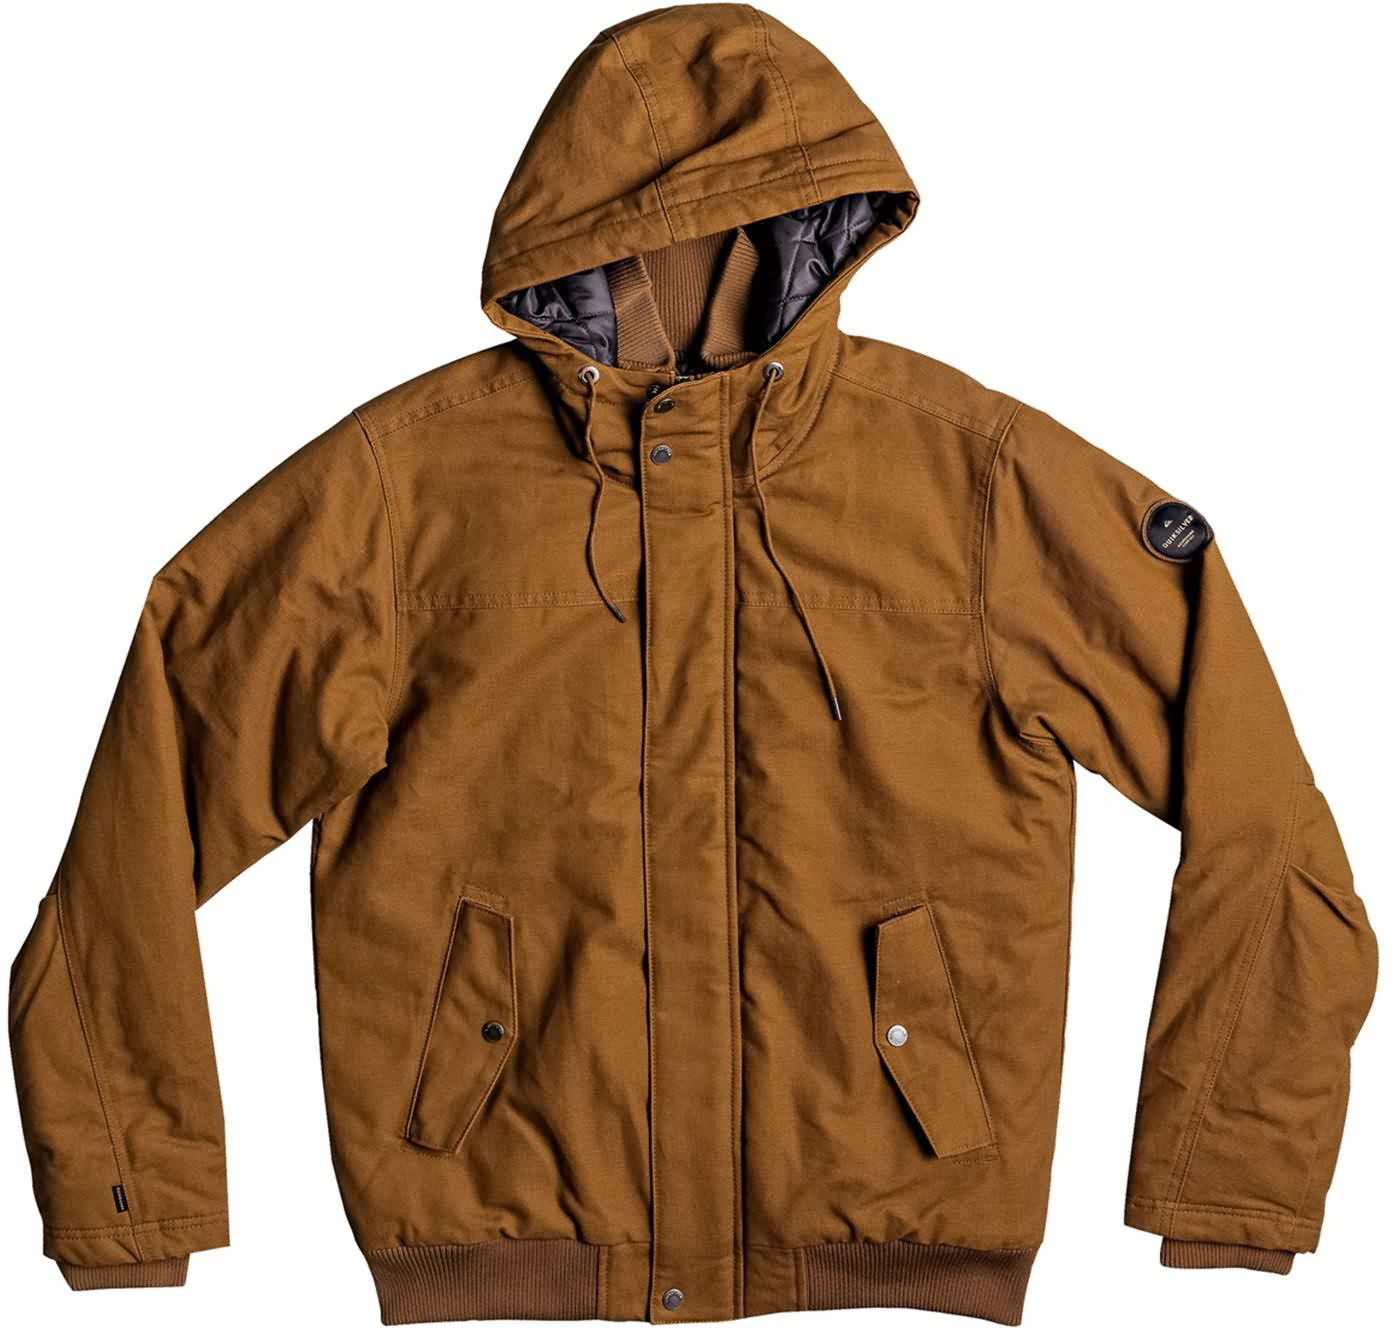 Quiksilver Surf Fall 2017 Mens Jackets & Outerwear Preview